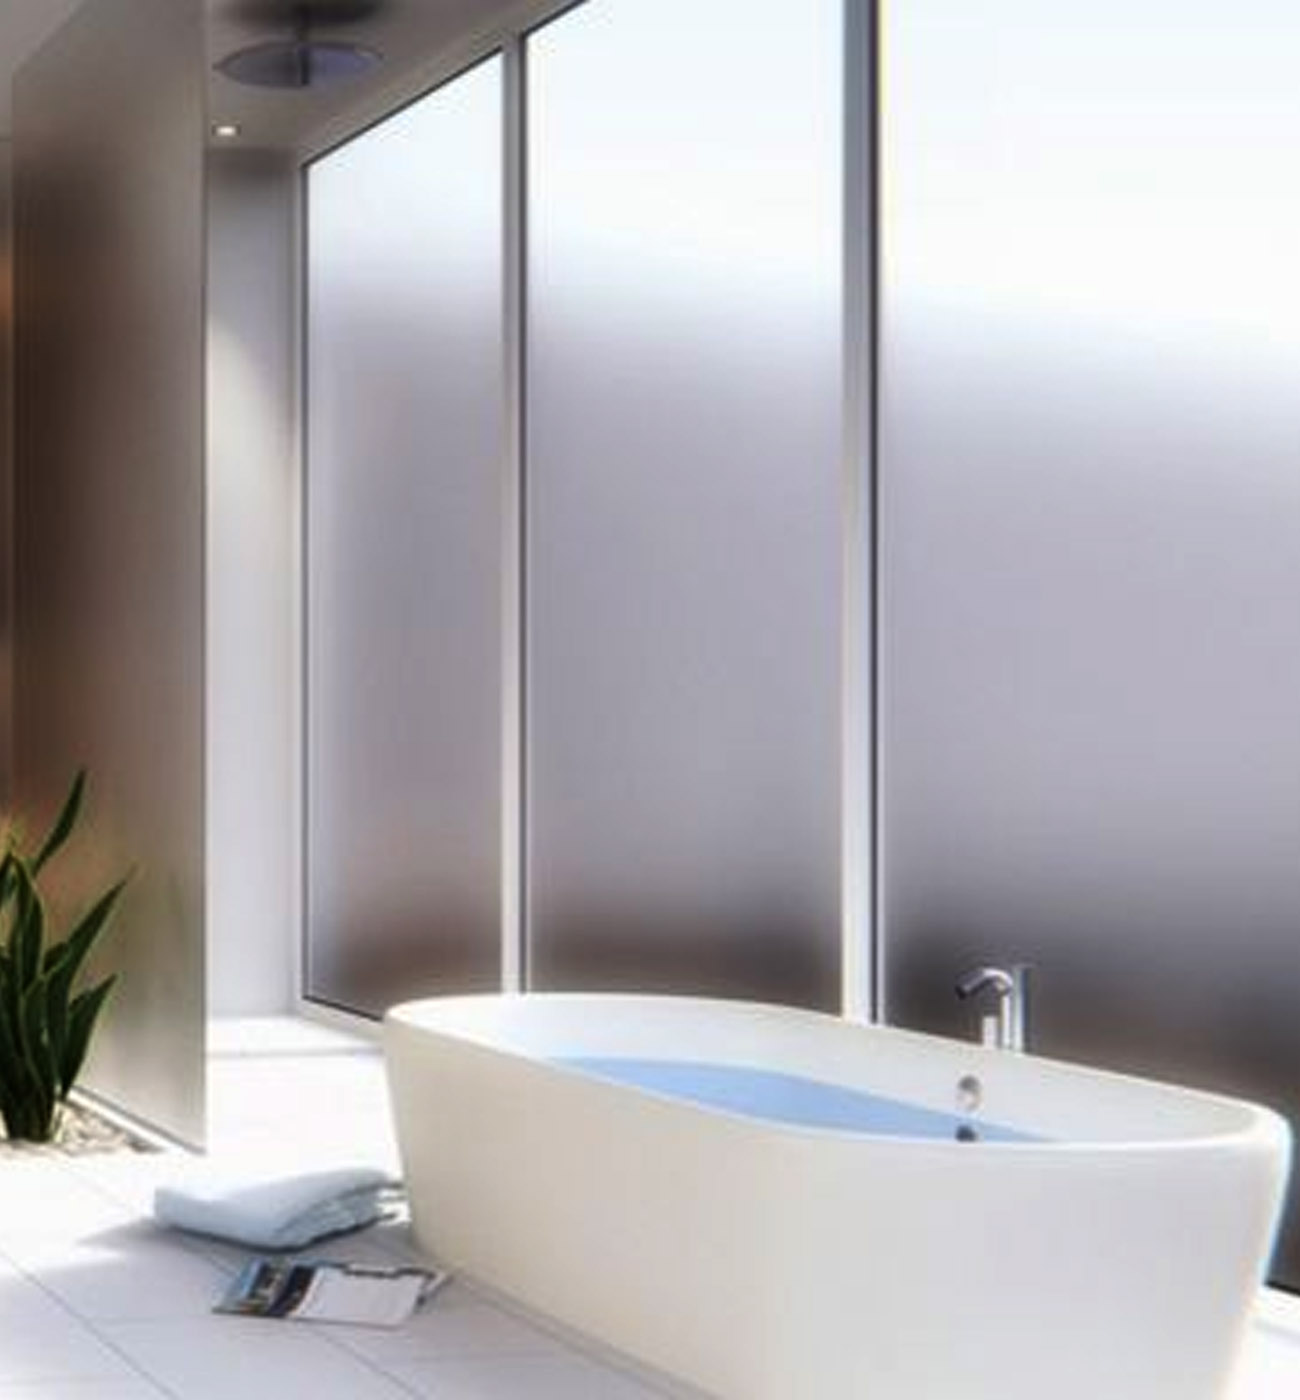 Privacy Windows in Bathroom - Advanced Window Products